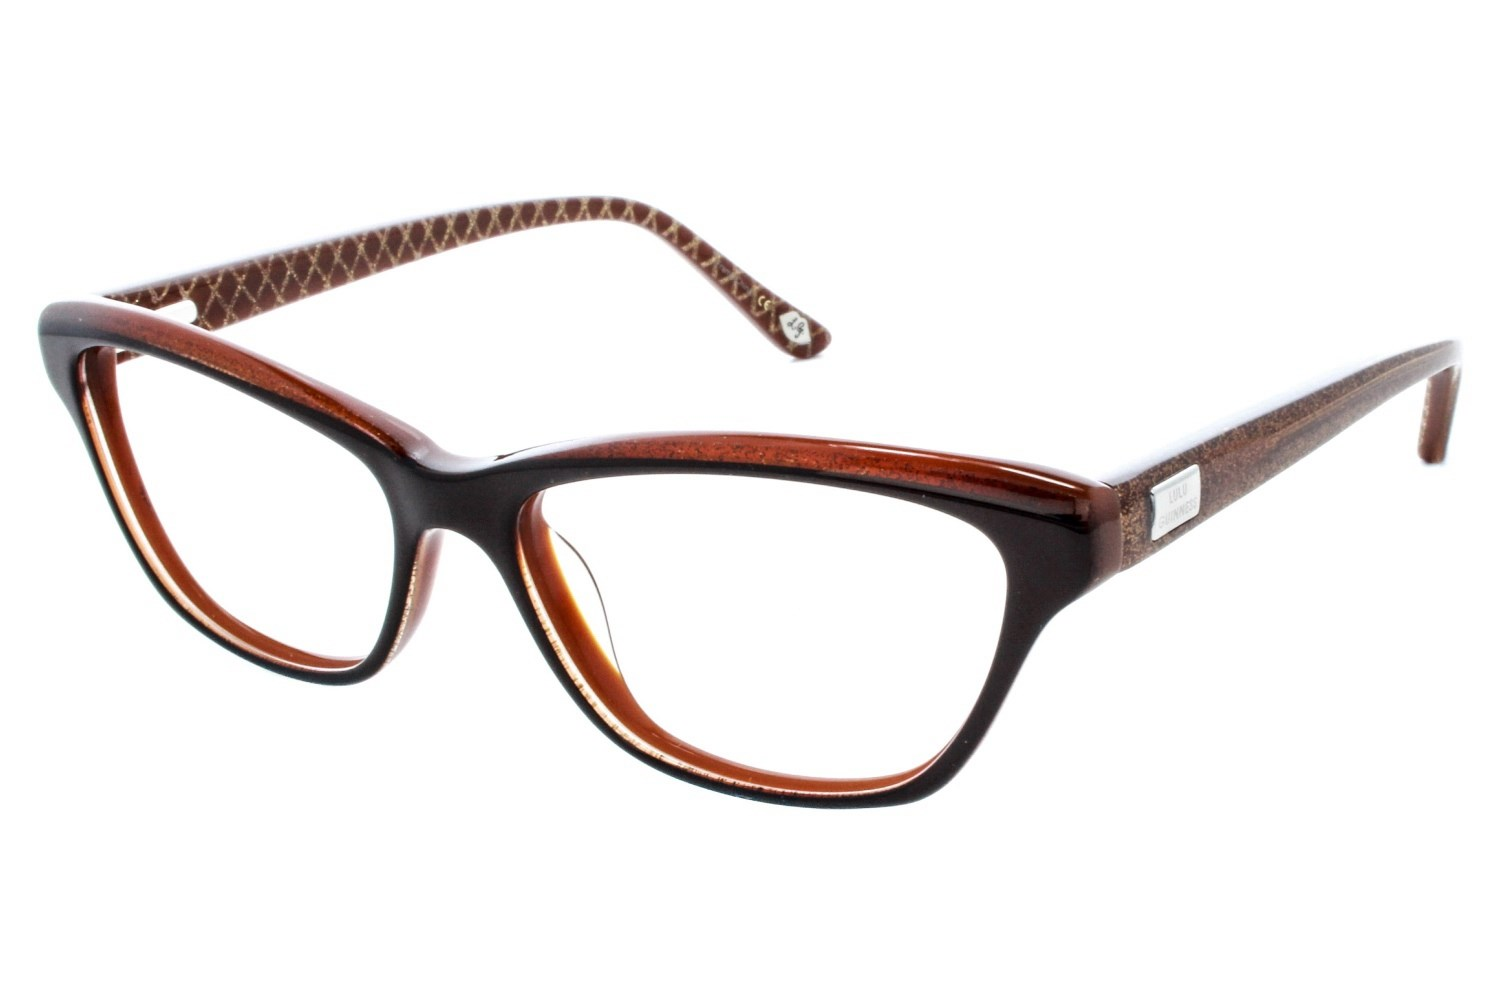 lulu-guinness-l870-prescription-eyeglasses